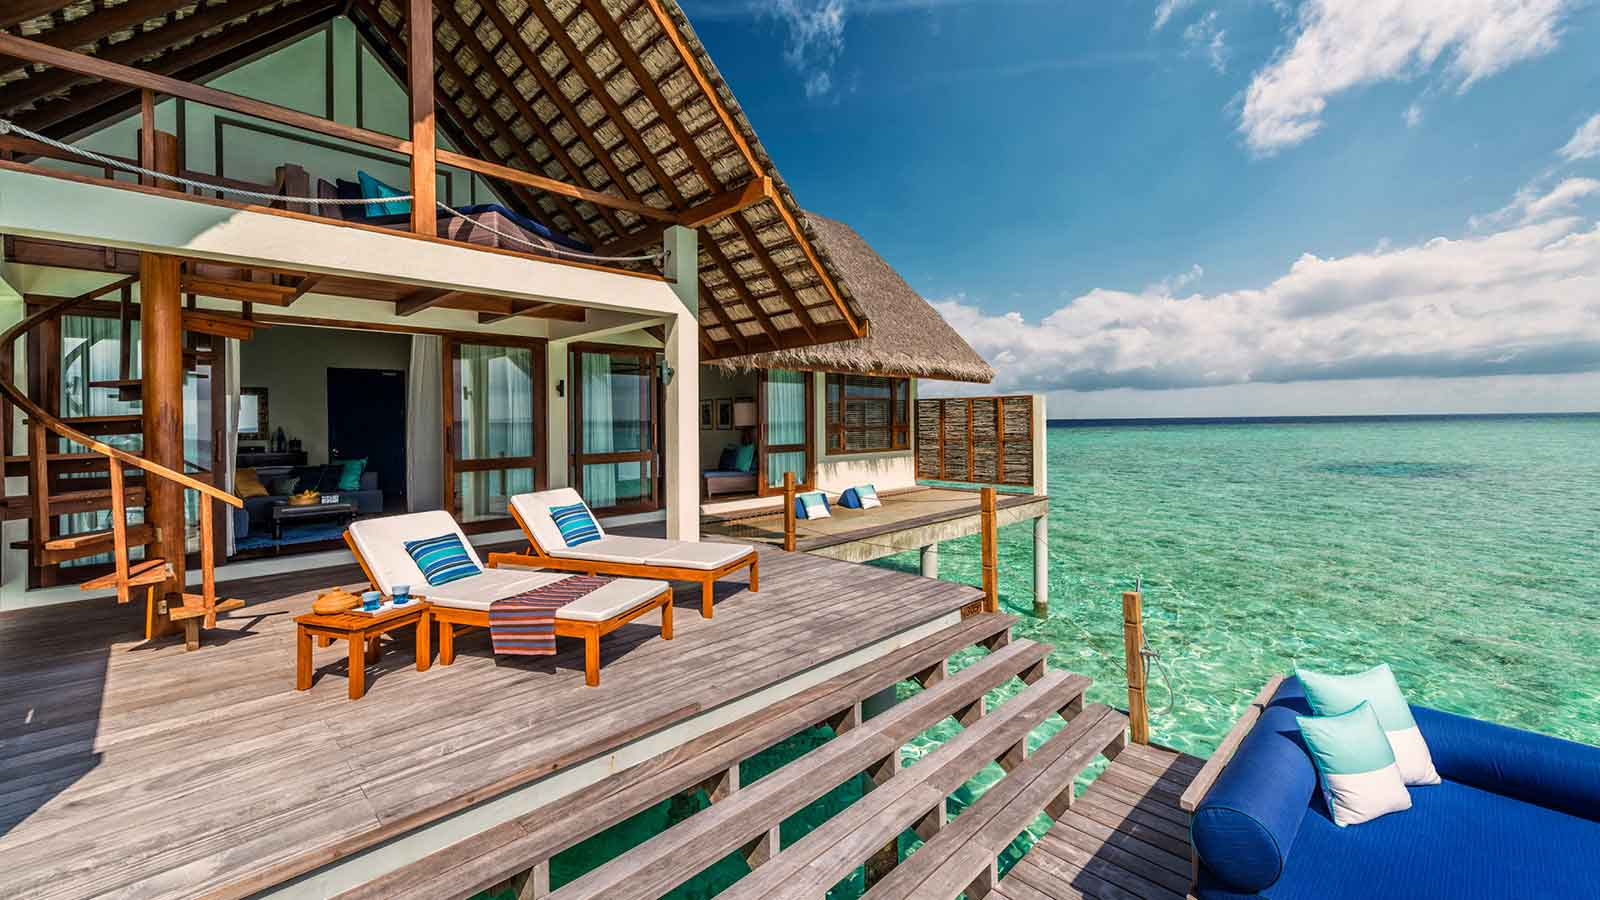 Maldives at Landaa Giraavaru Water Villa